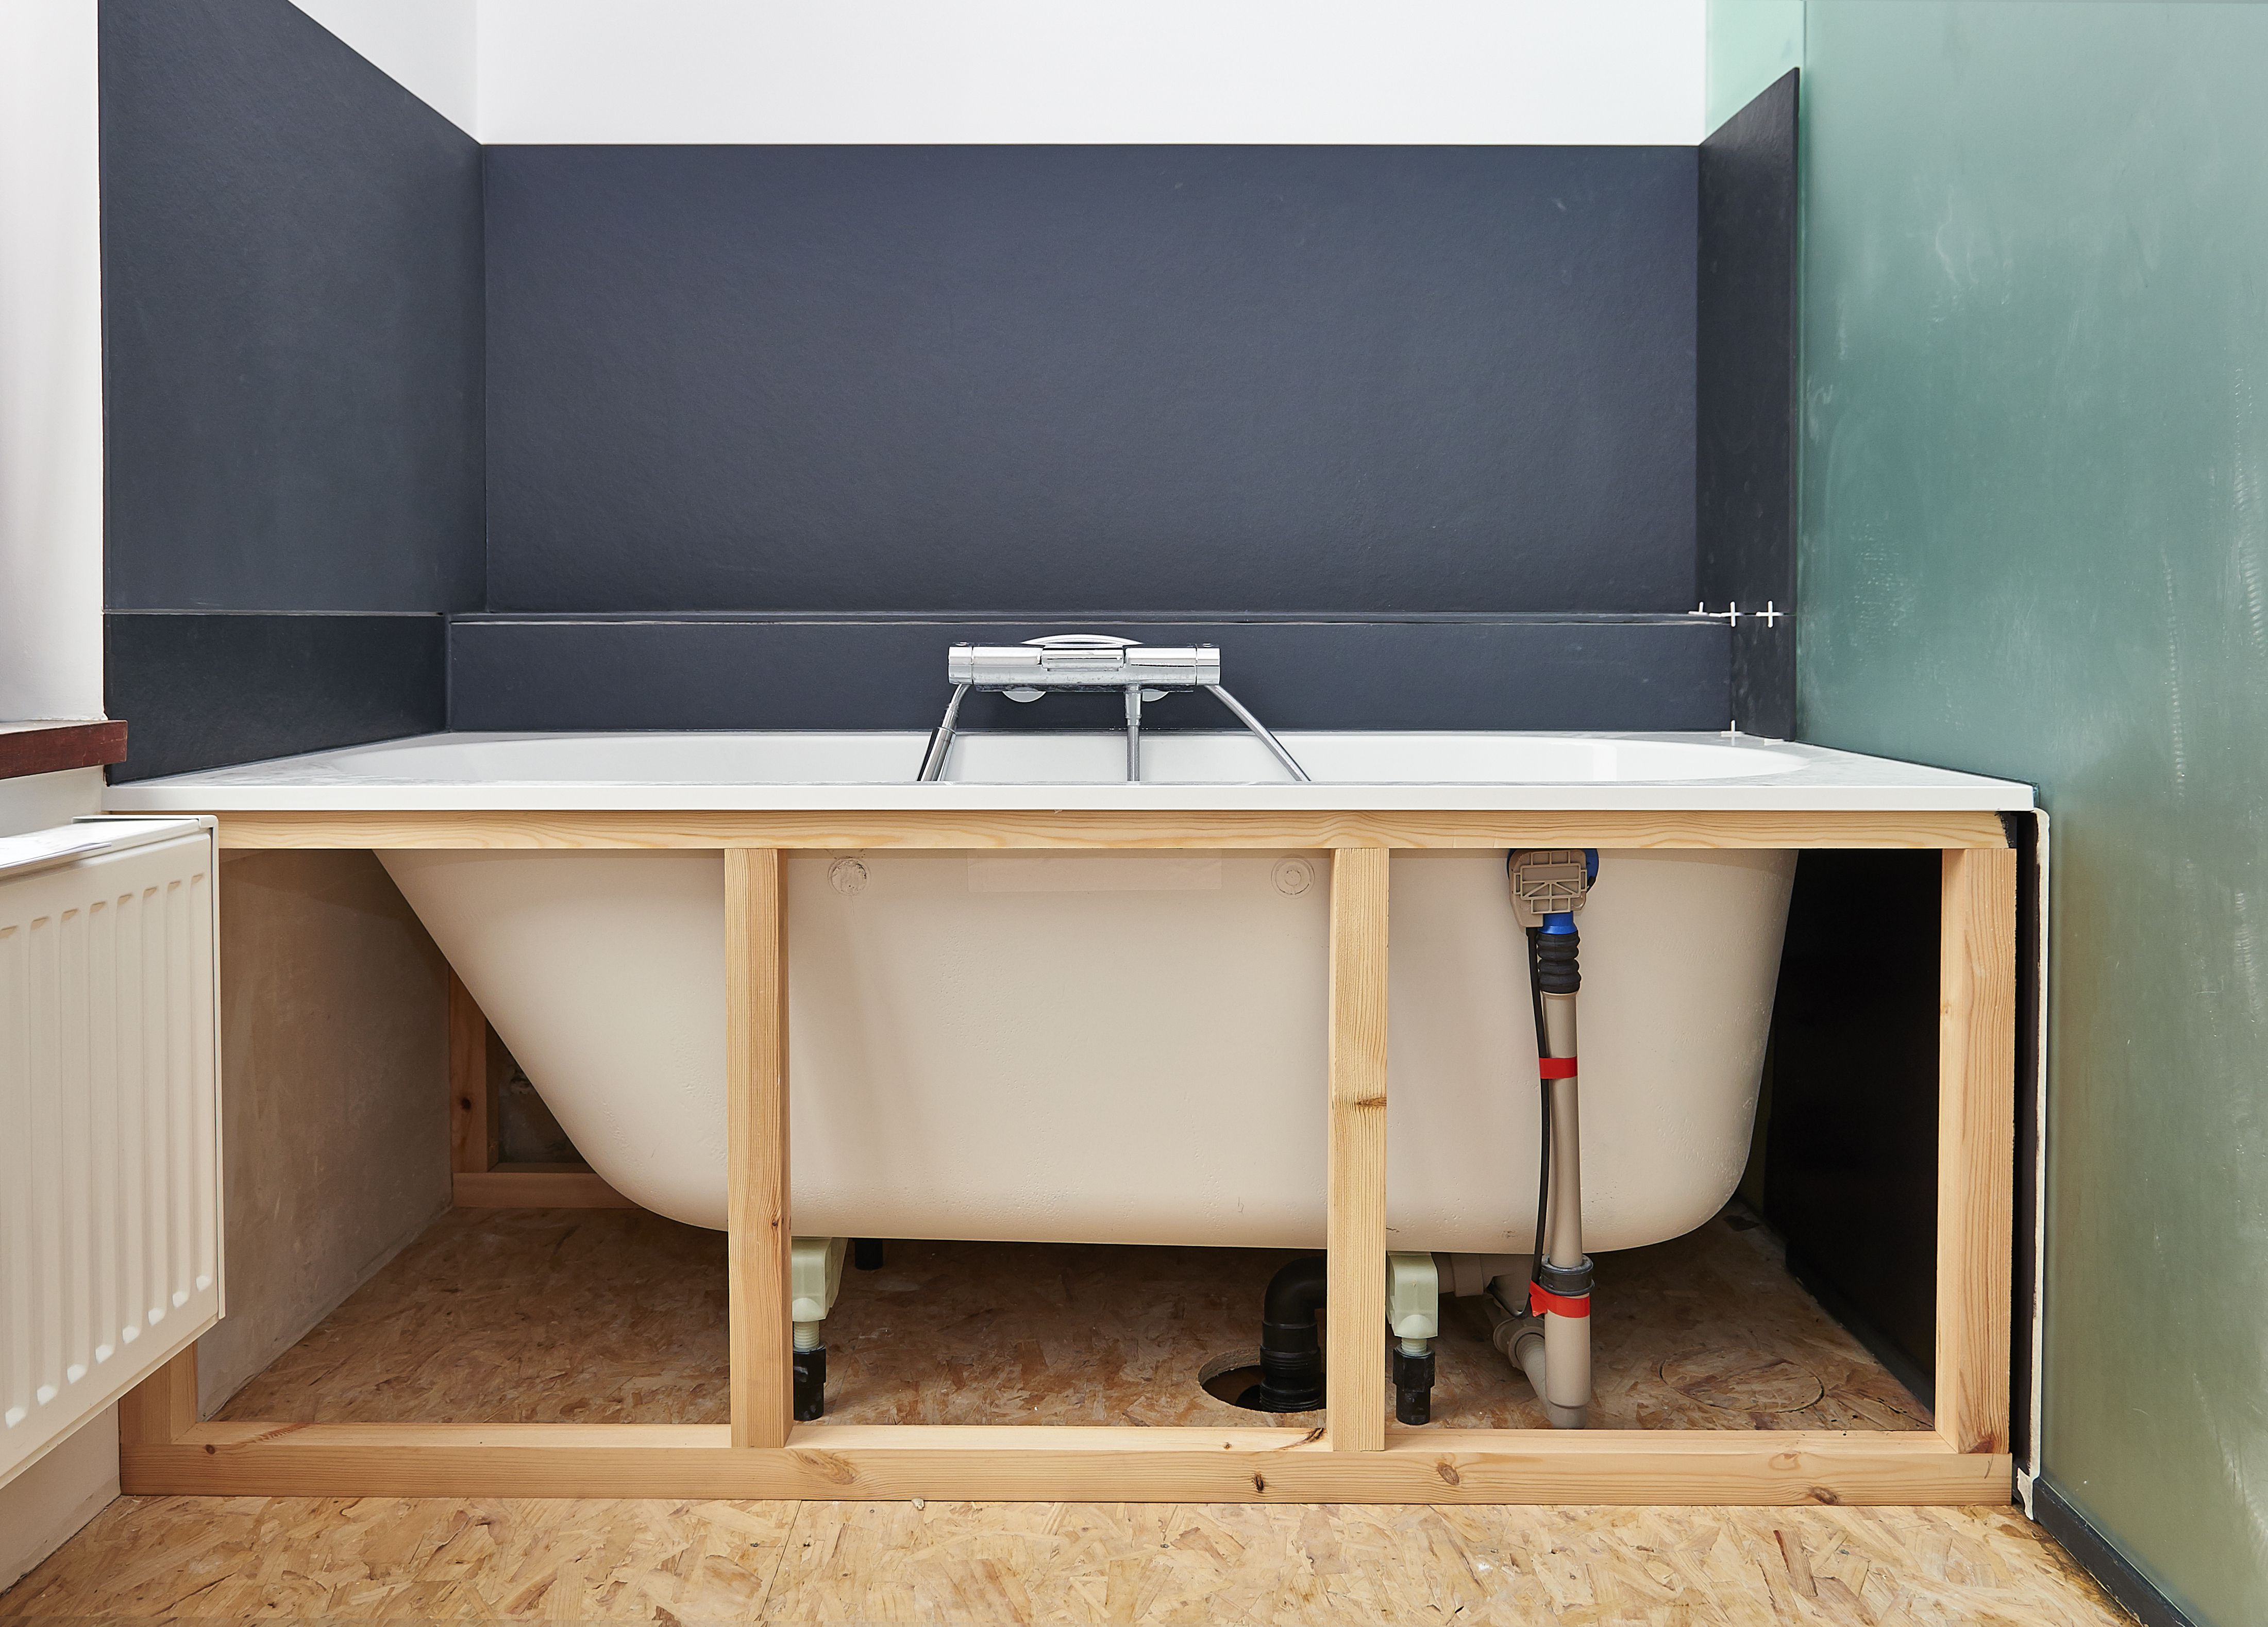 Before you buy a tub or shower surround for Plumbing remodeling